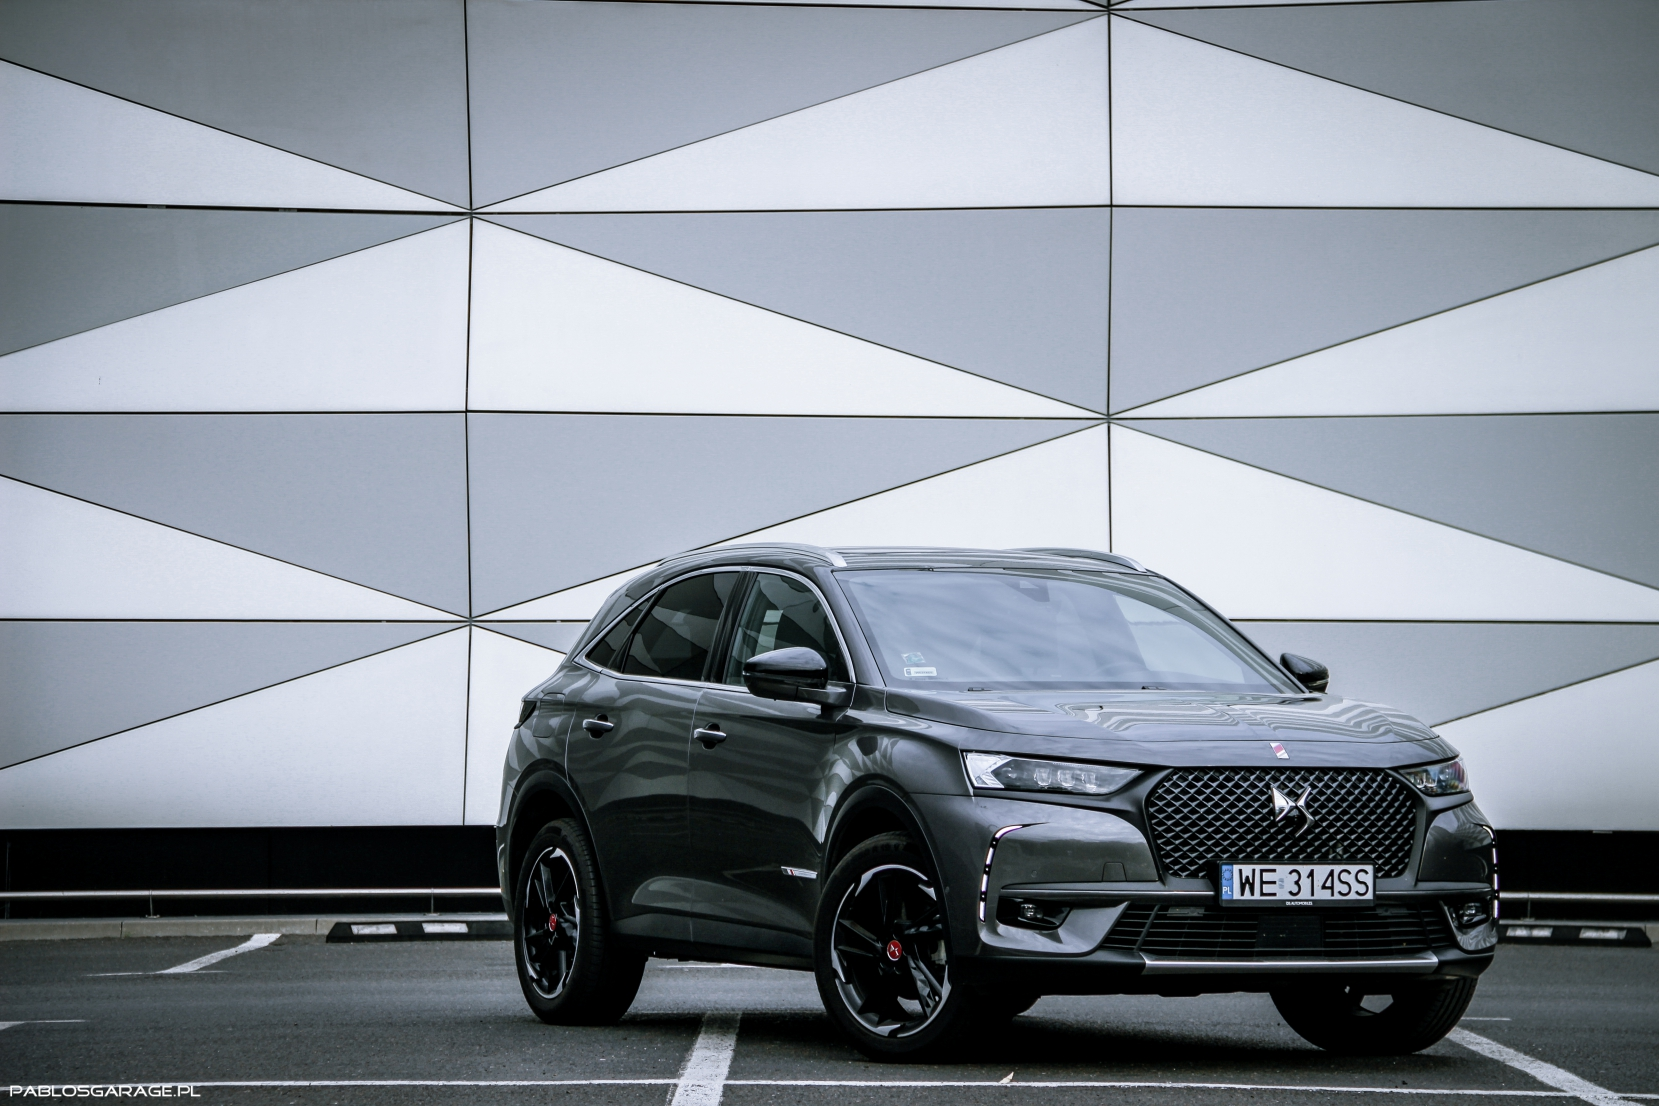 DS7 Crossback 1.6 PureTech 225 KM Performance line